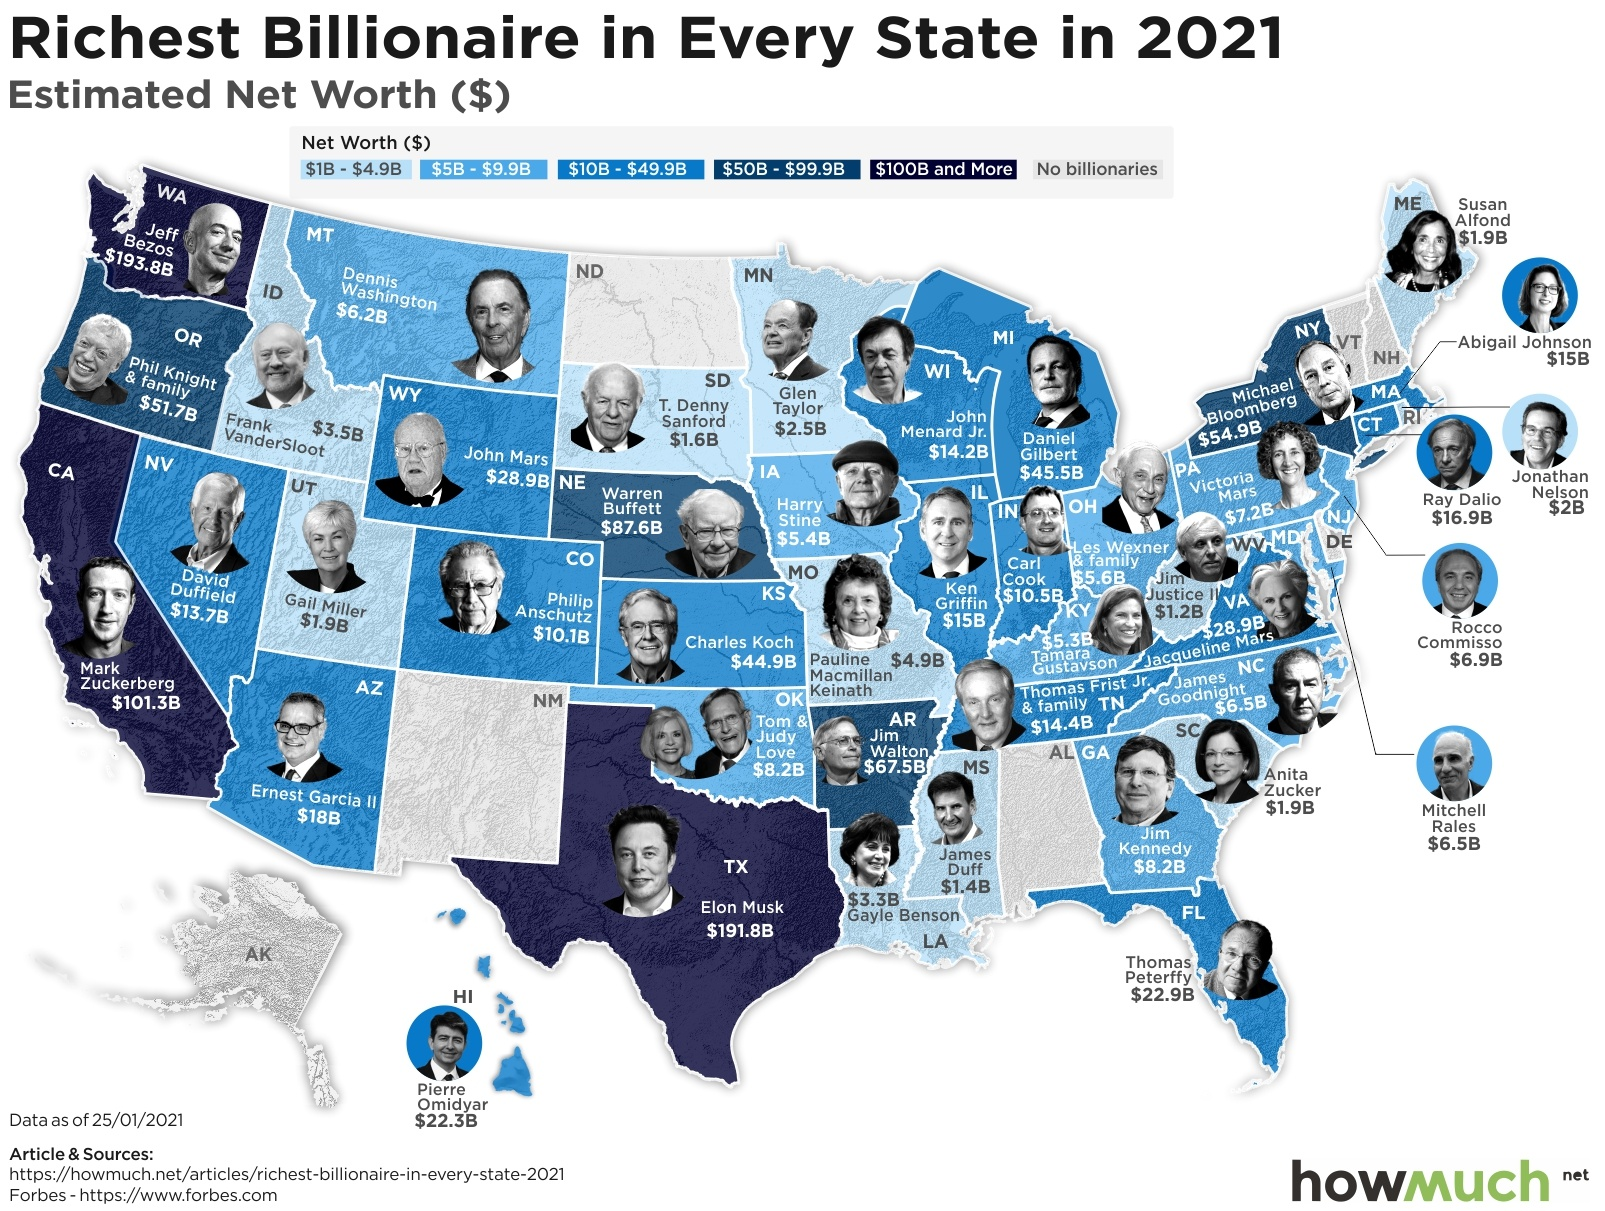 Wealthiest Billionaire in every state